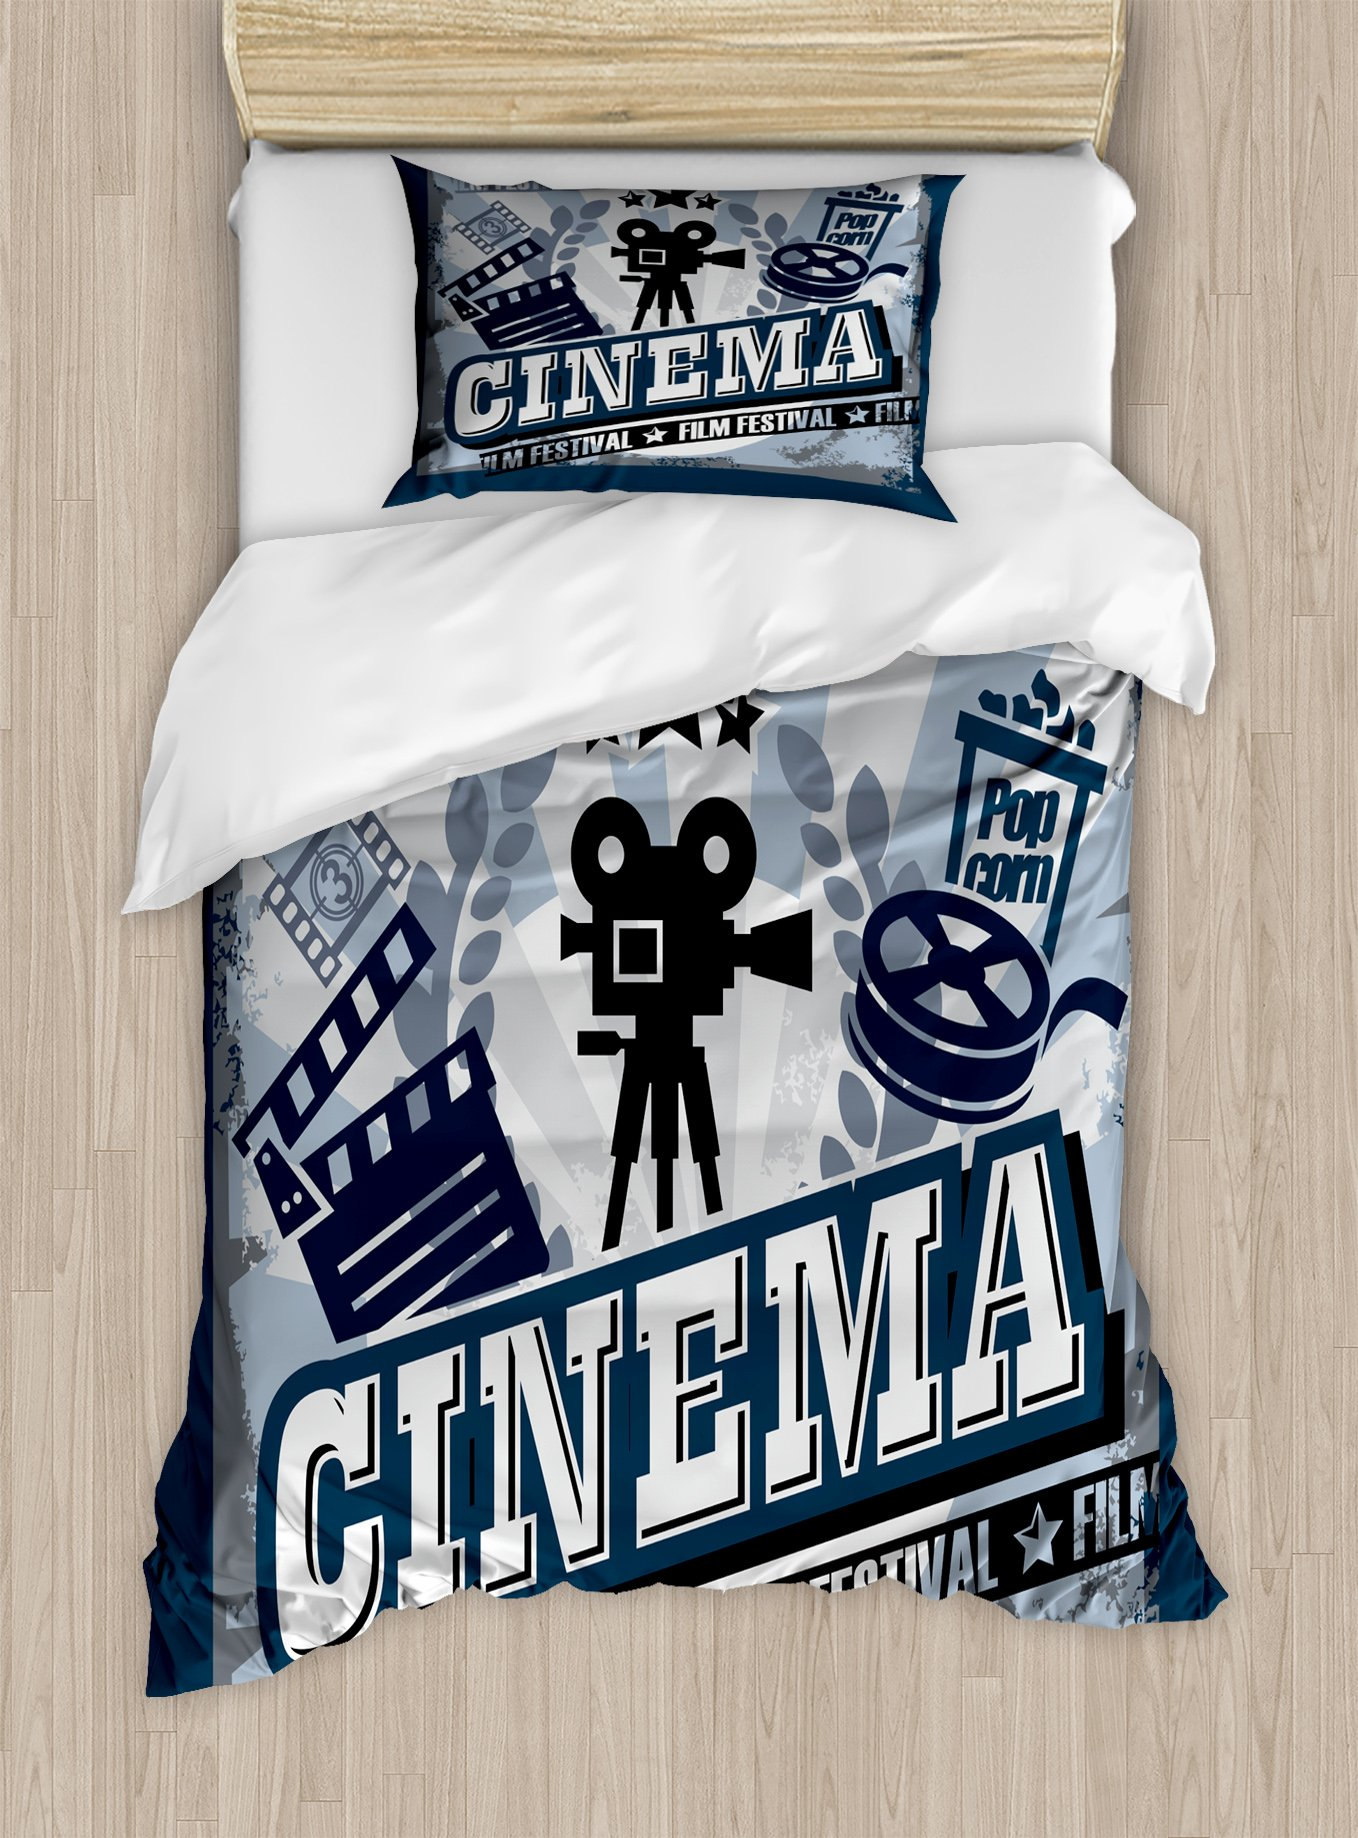 Ambesonne Movie Theater Twin Size Duvet Cover Set, Vintage Cinema Poster Design with Grunge Effect and Old Fashioned Icons, Decorative 2 Piece Bedding Set with 1 Pillow Sham, Blue Black Grey